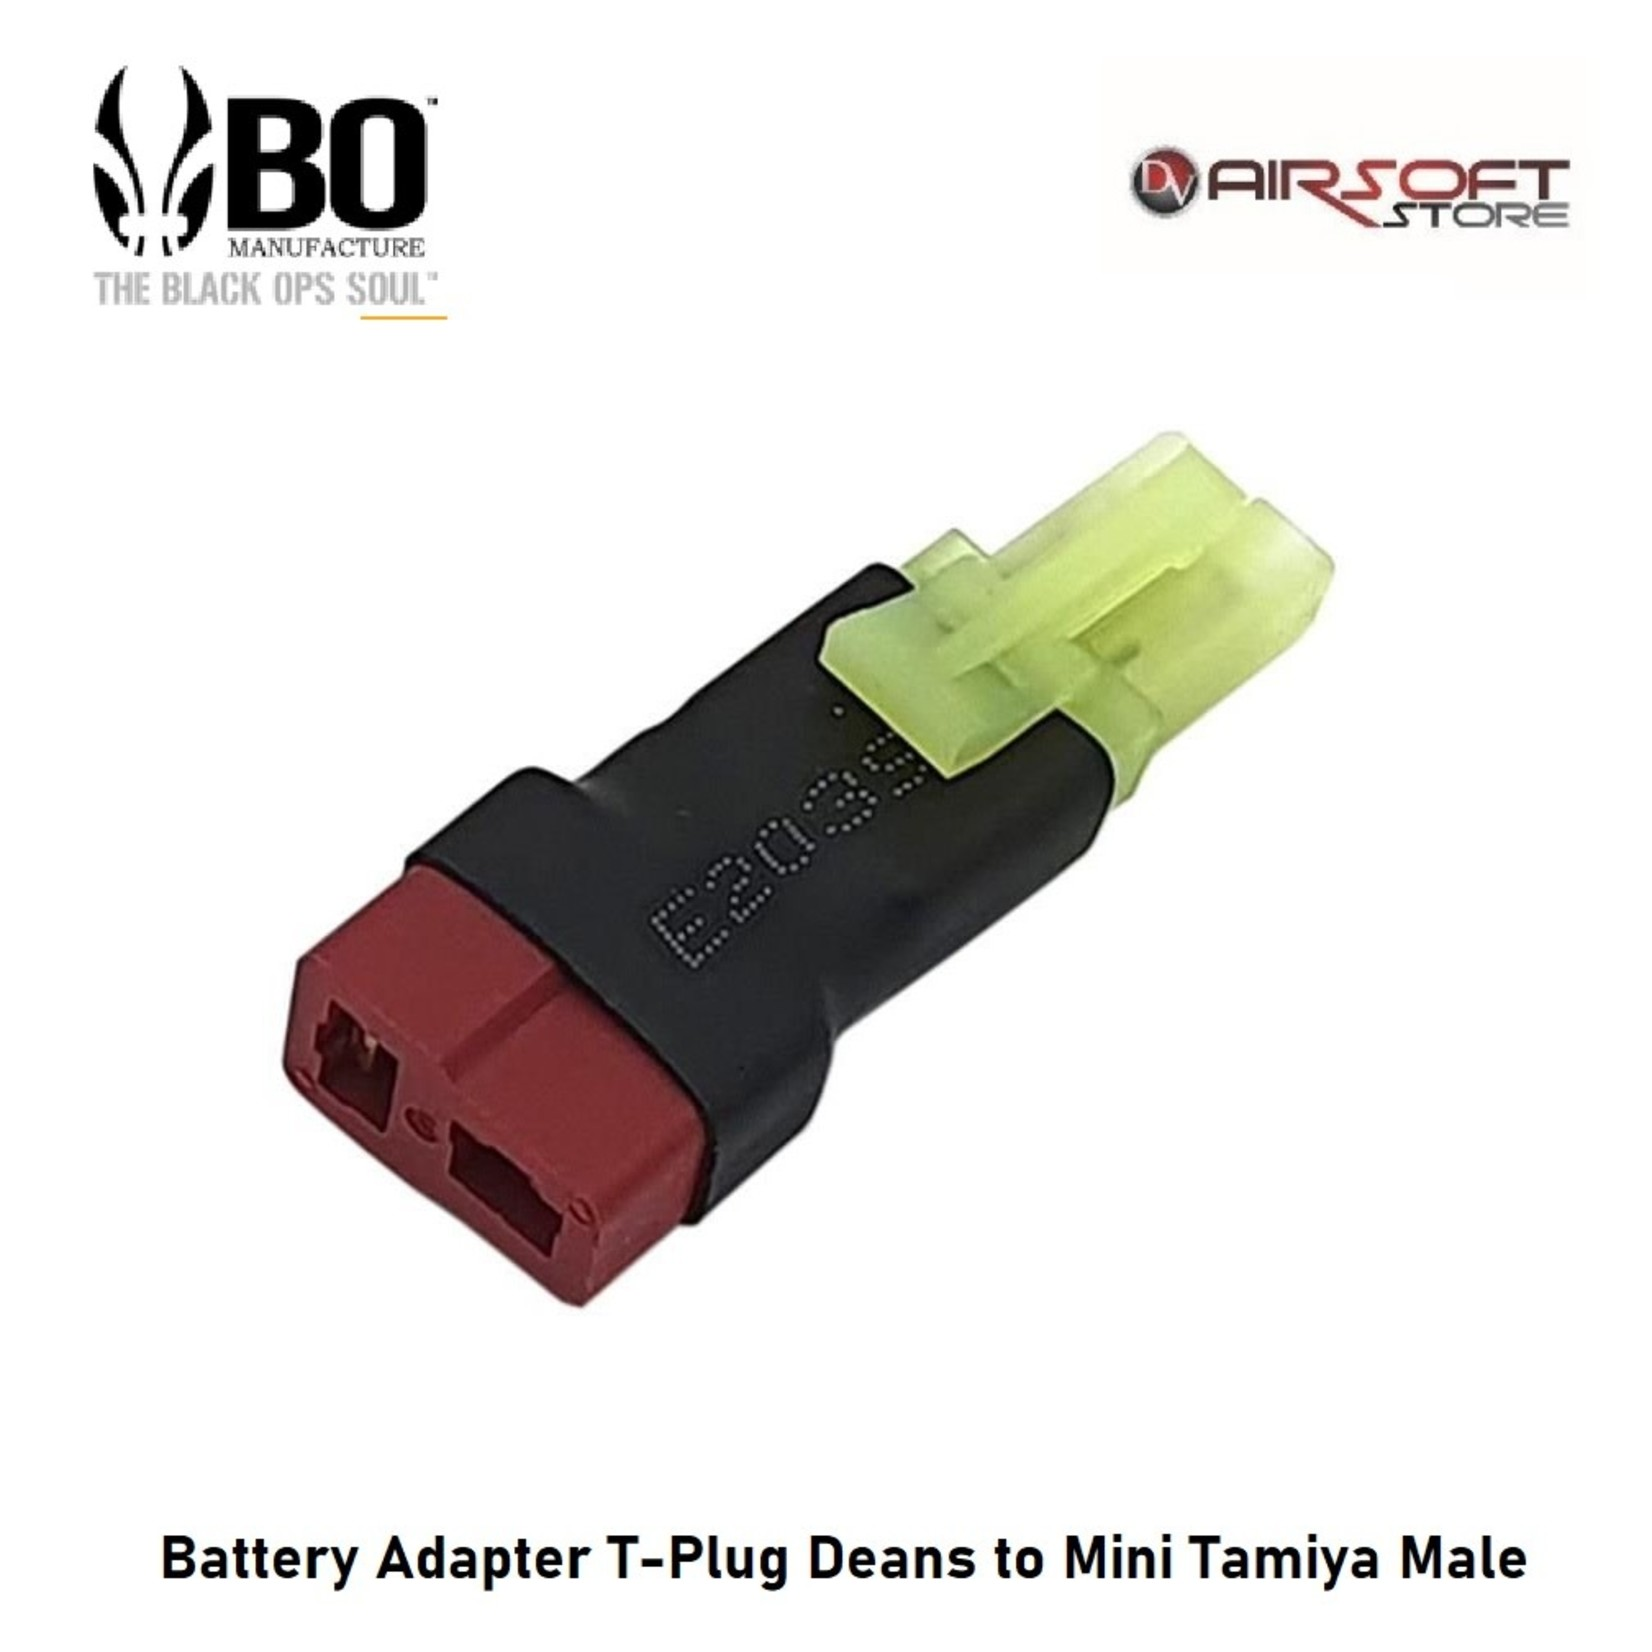 BO Battery Adapter T-Plug Deans to Mini Tamiya Male